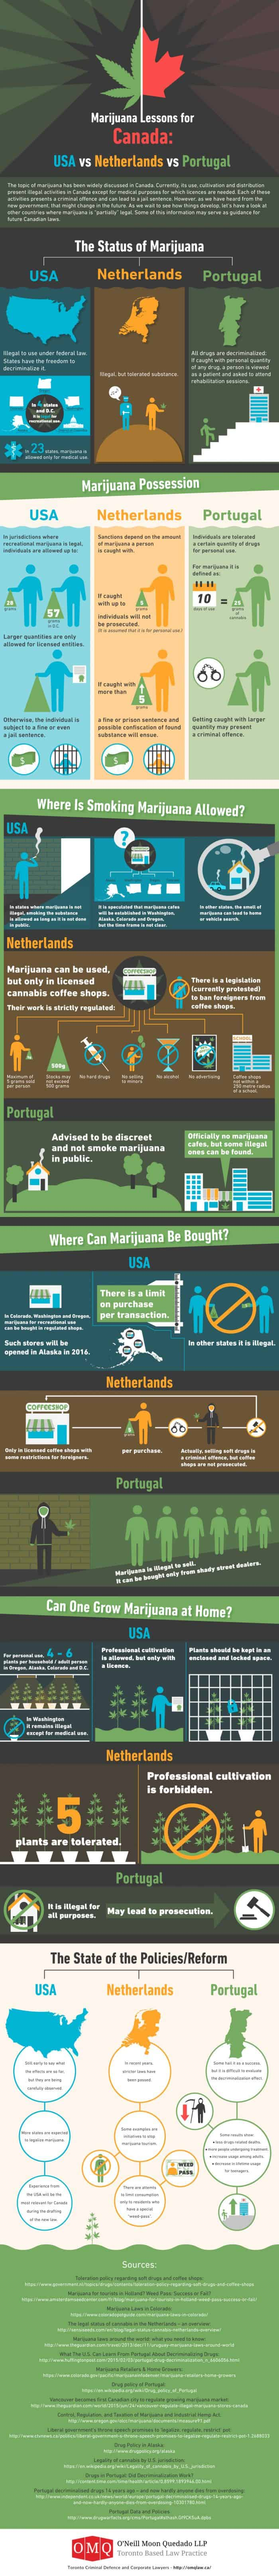 Legal Cannabis Country By Country Infographic